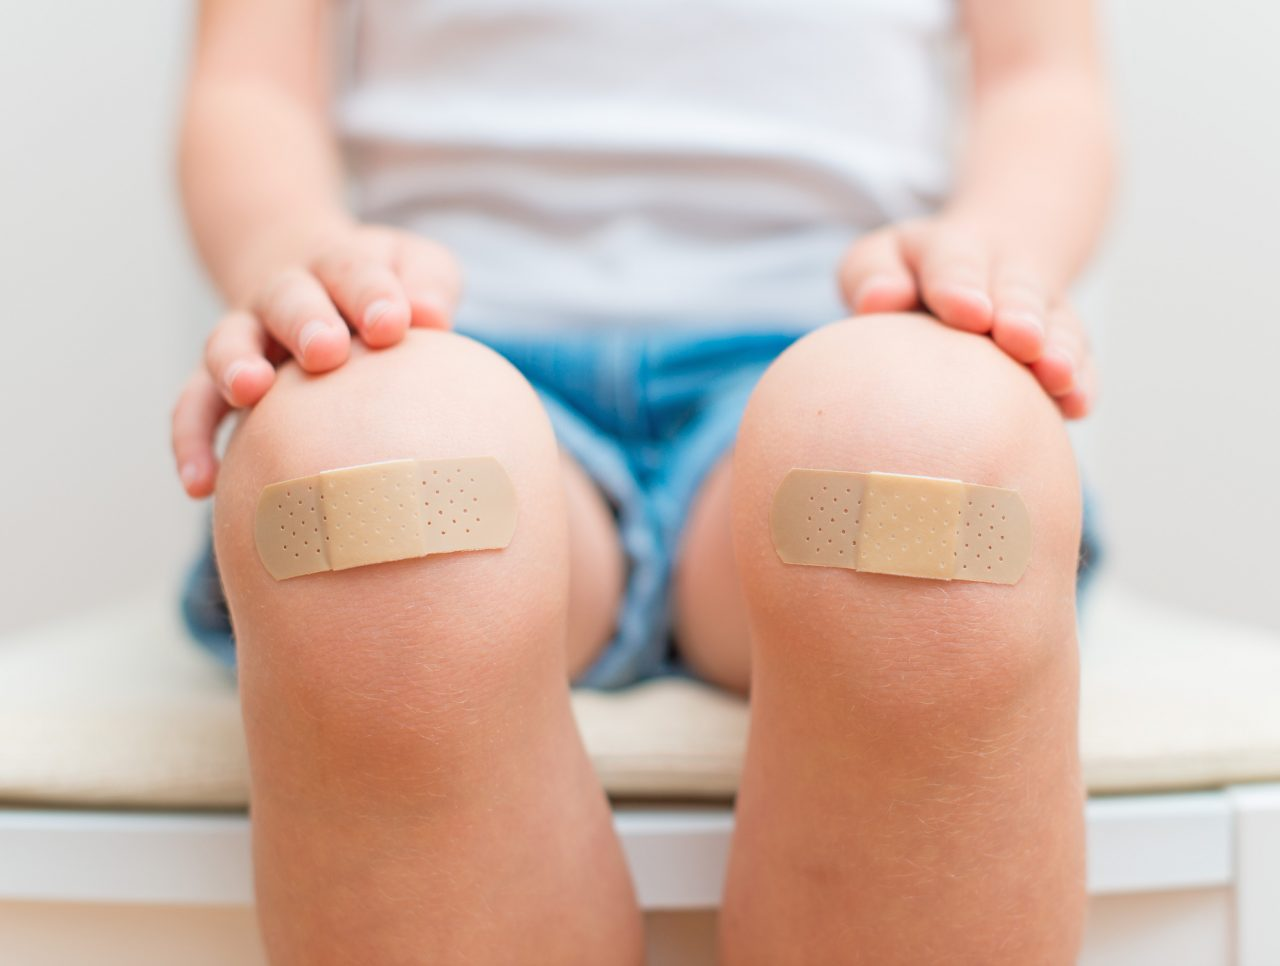 First Aid Basics For Cuts And Scrapes